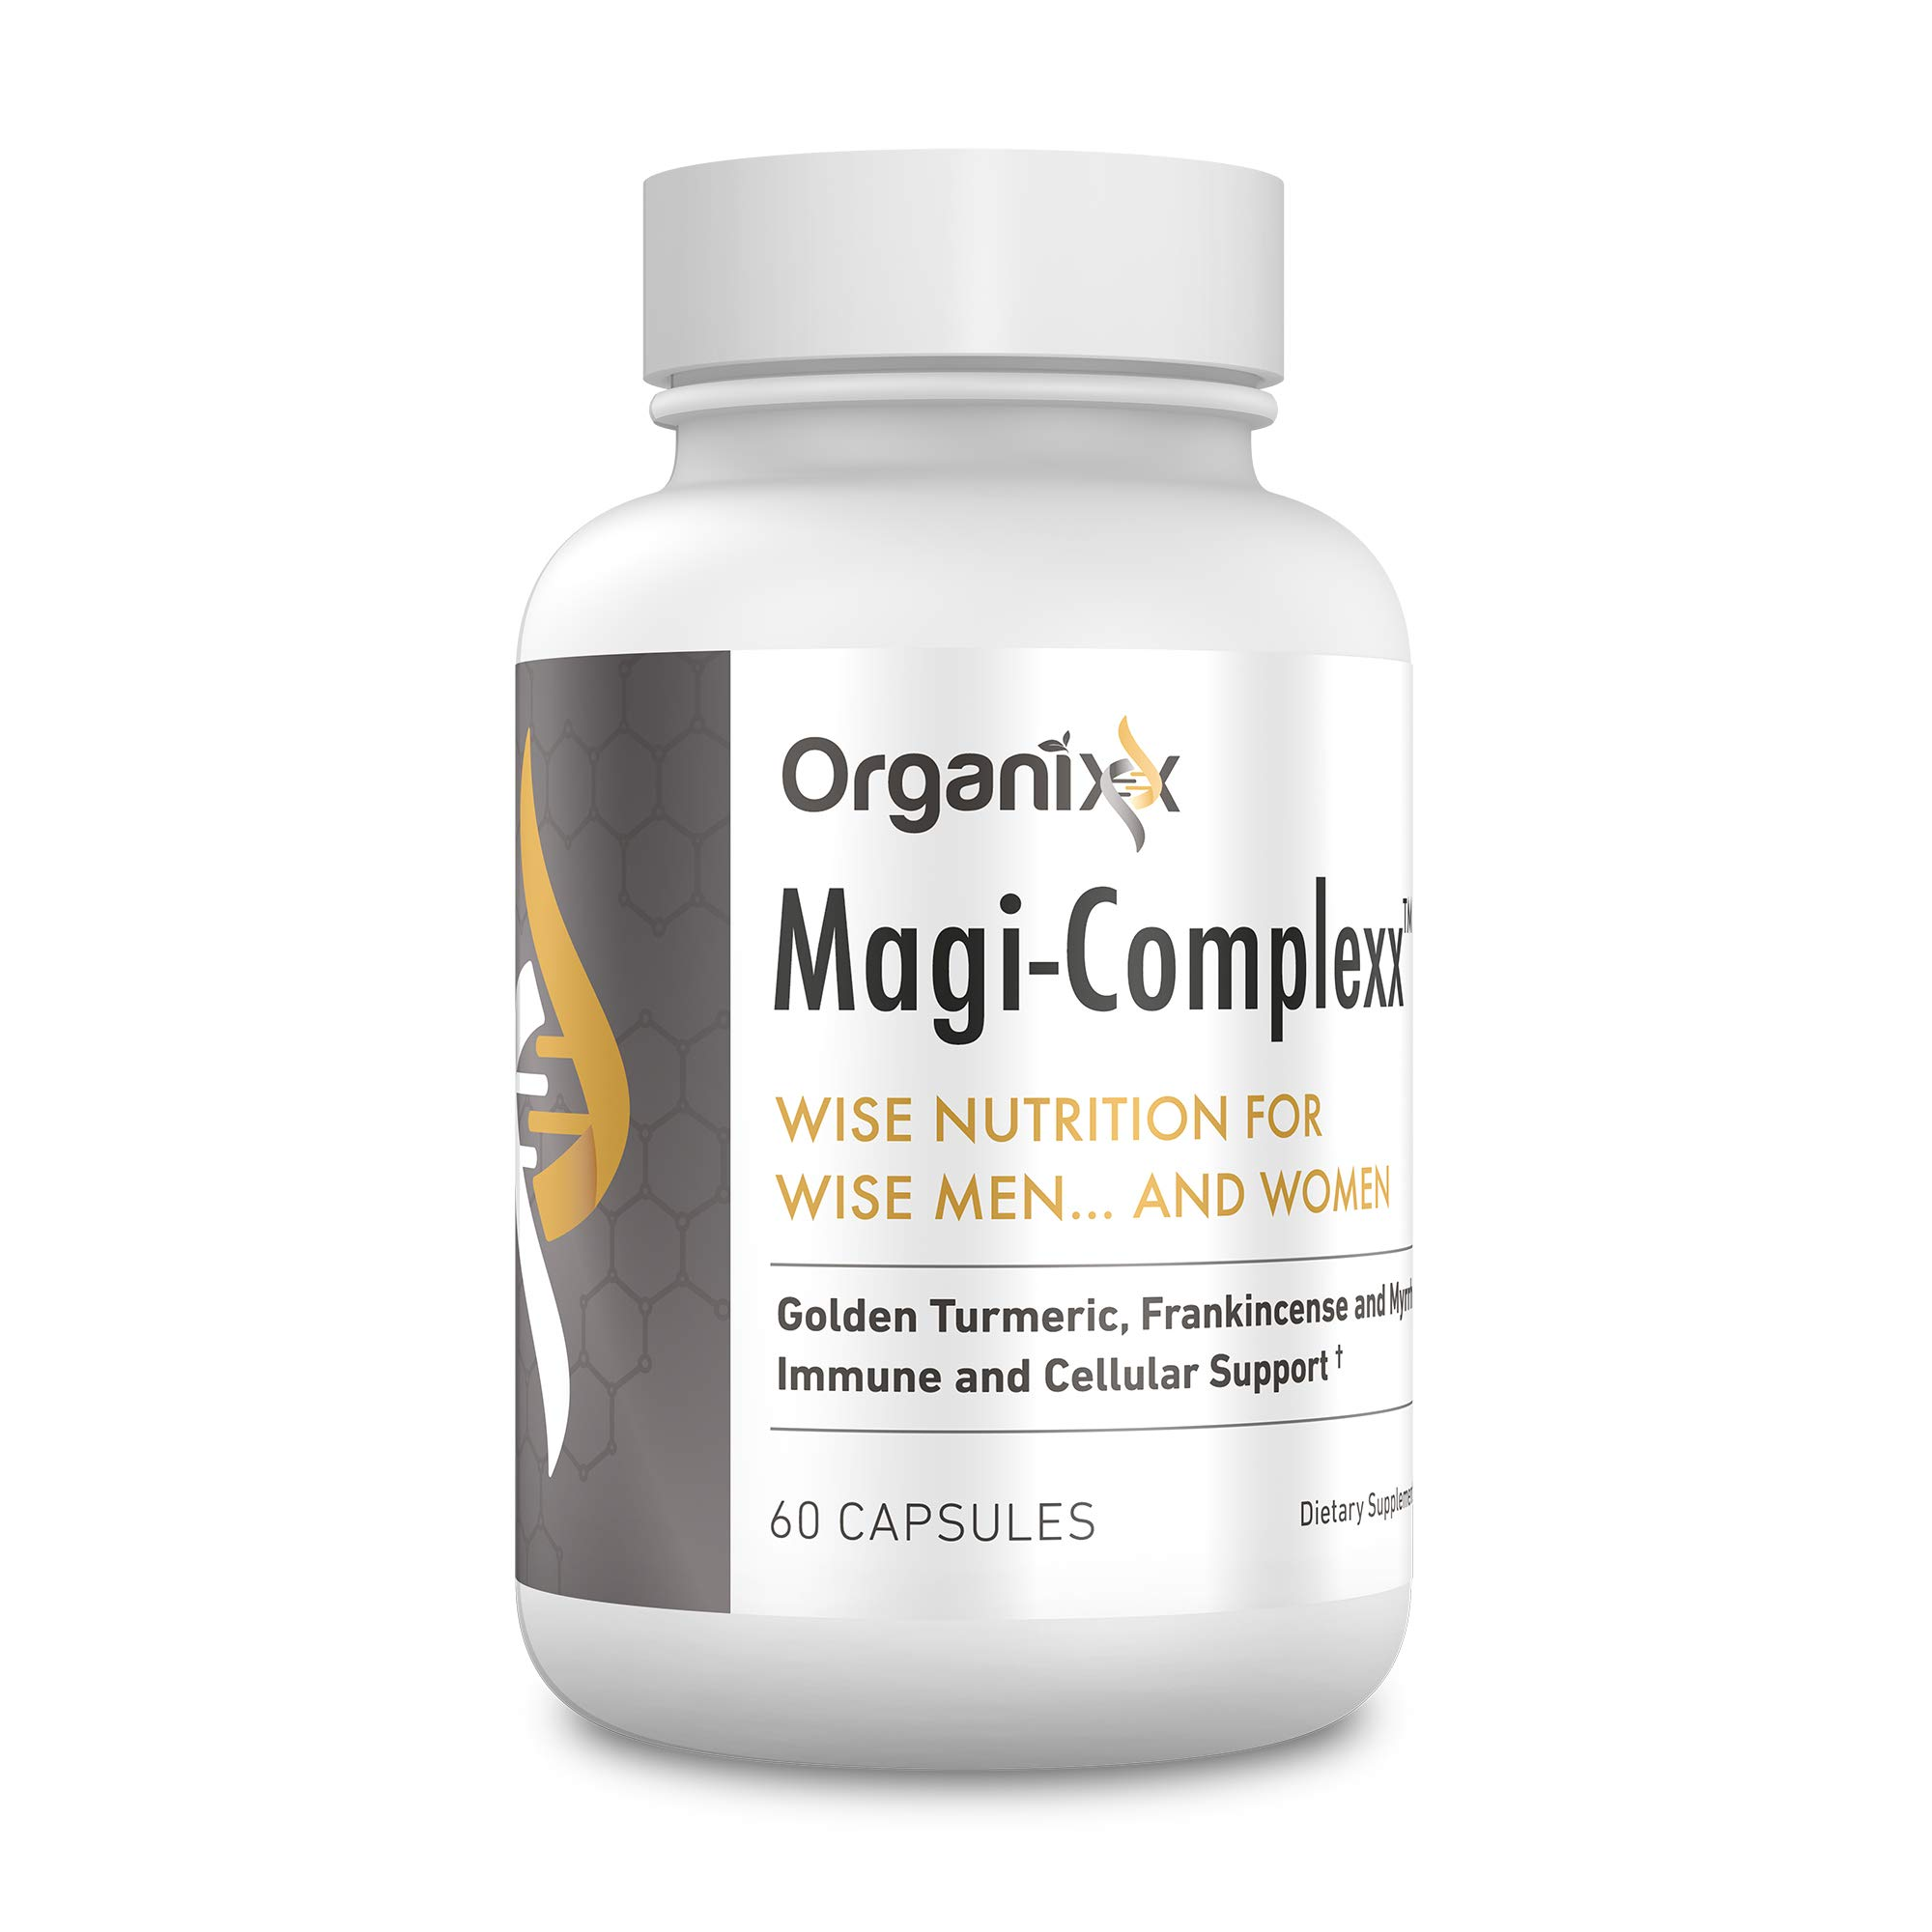 Magi-Complexx by Organixx - Frankincense, Myrrh, and Turmeric for the Strongest Inflammation Support